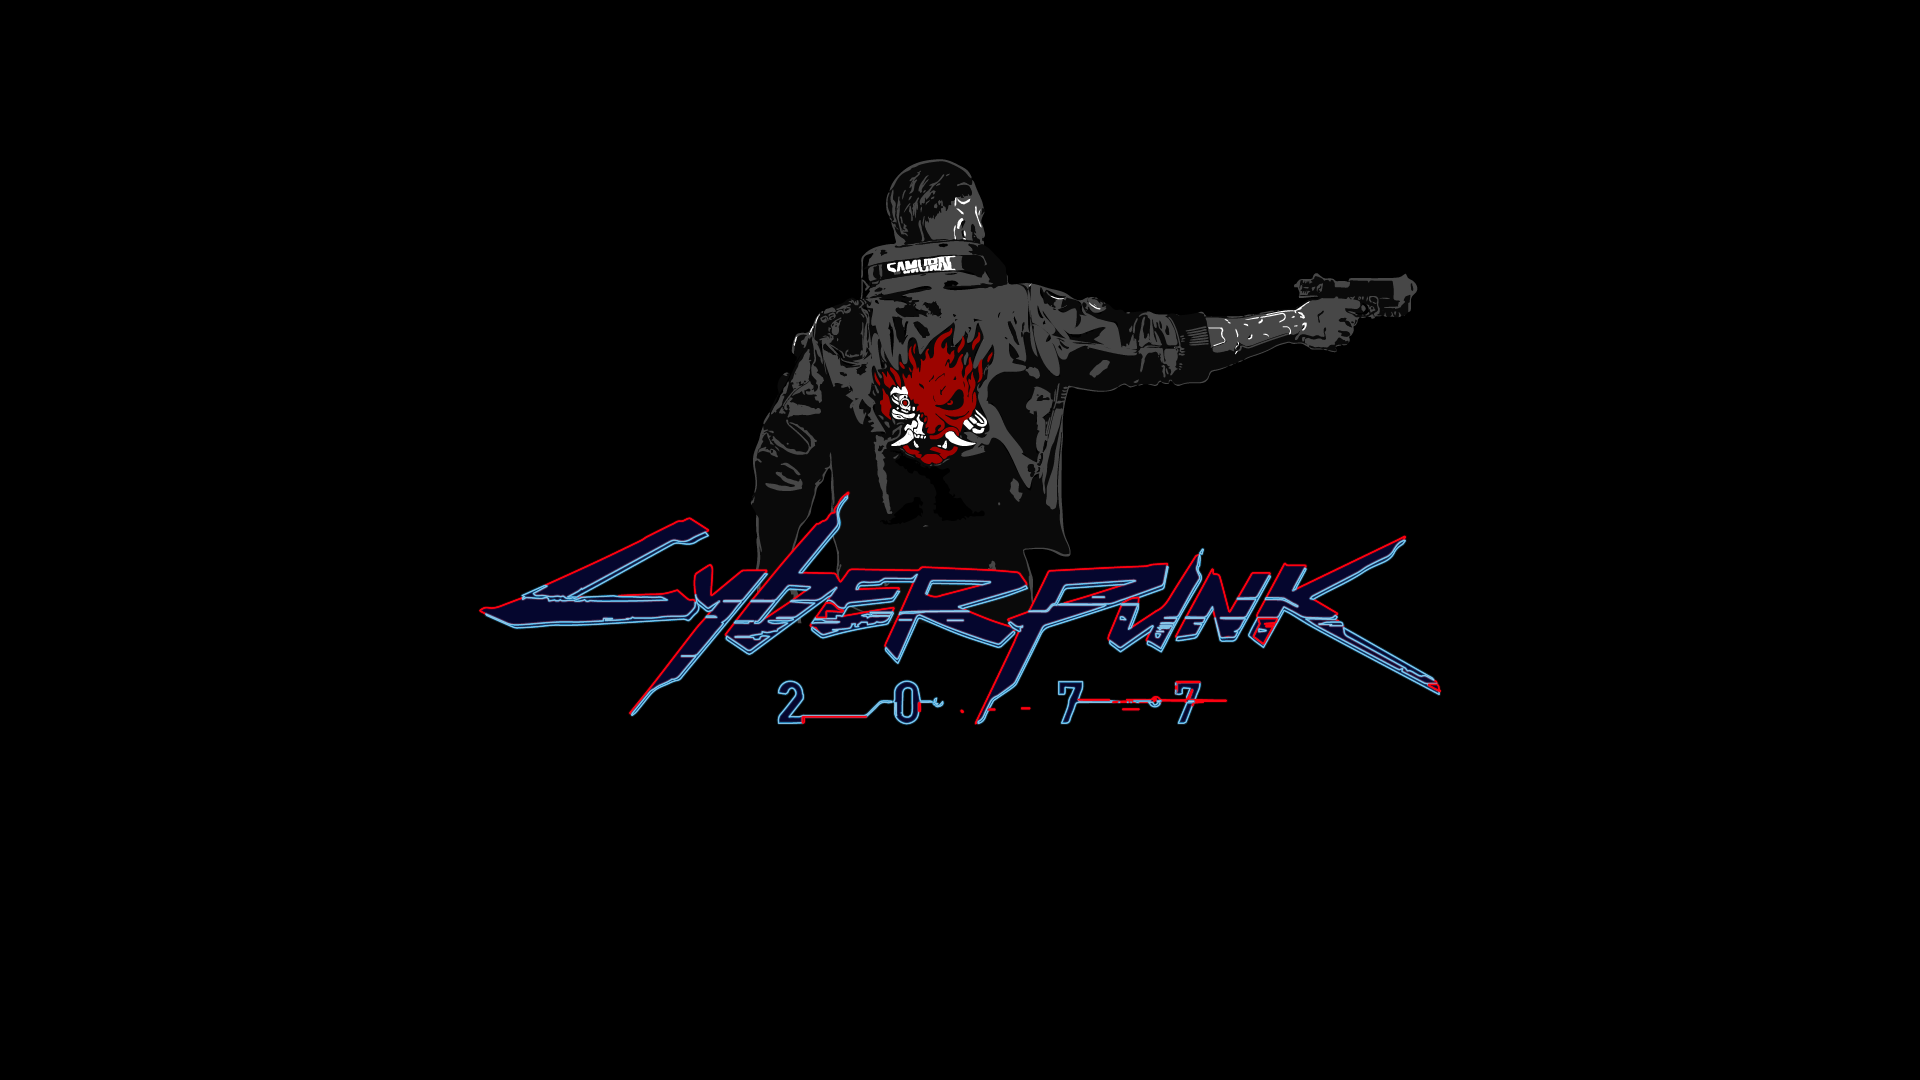 cyberpunk 2077 vi gun wallpaper for desktop laptop pc gamer 4k